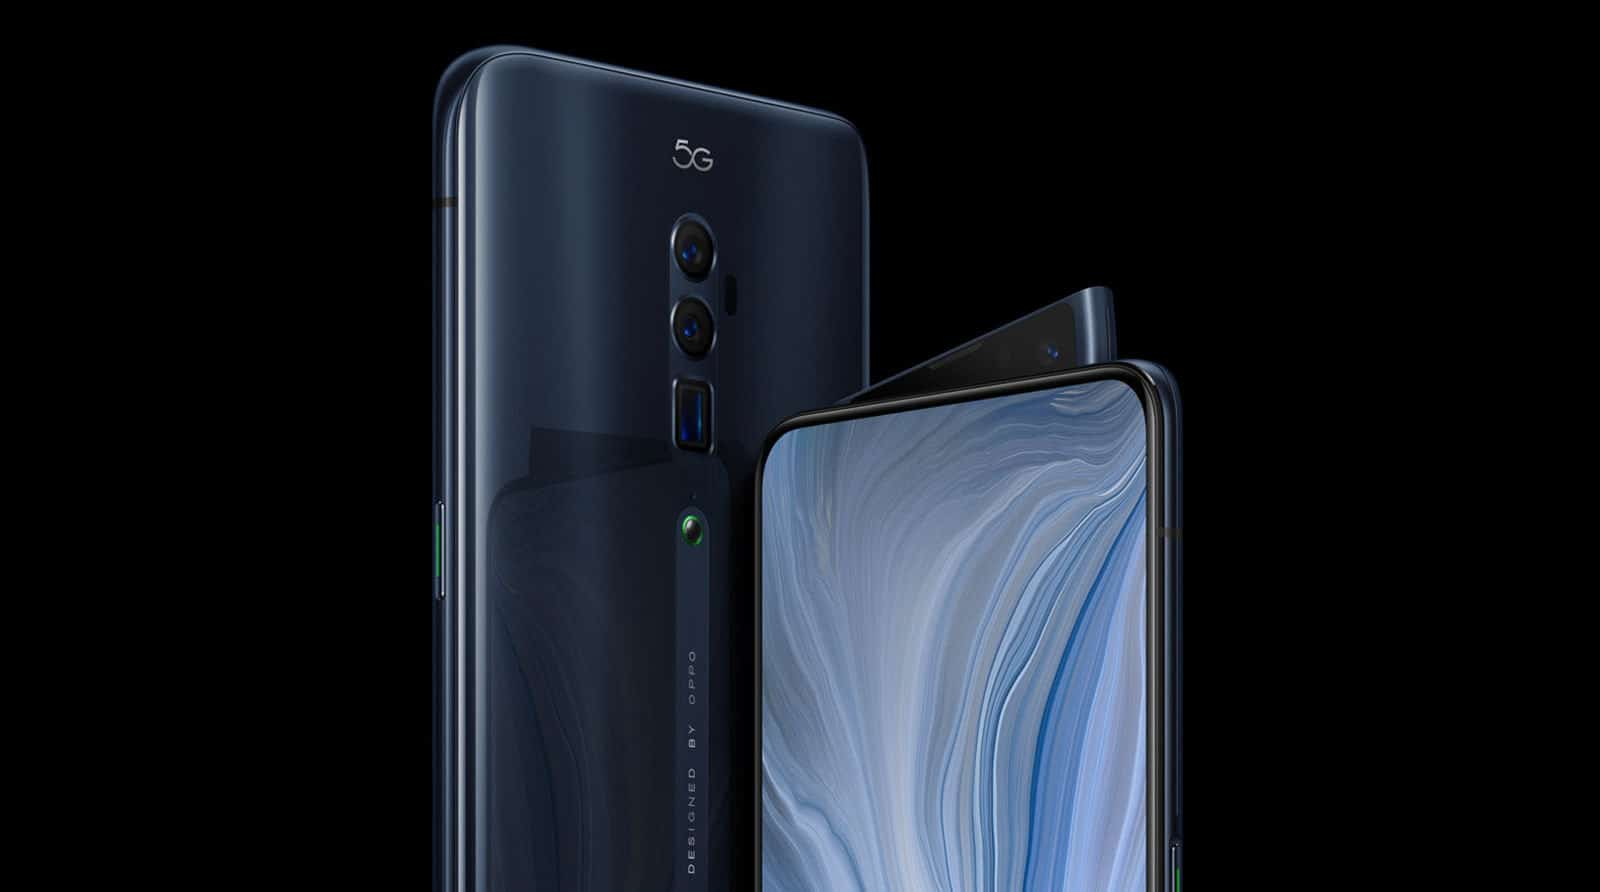 OPPO Reno 5G version officially released in Italy